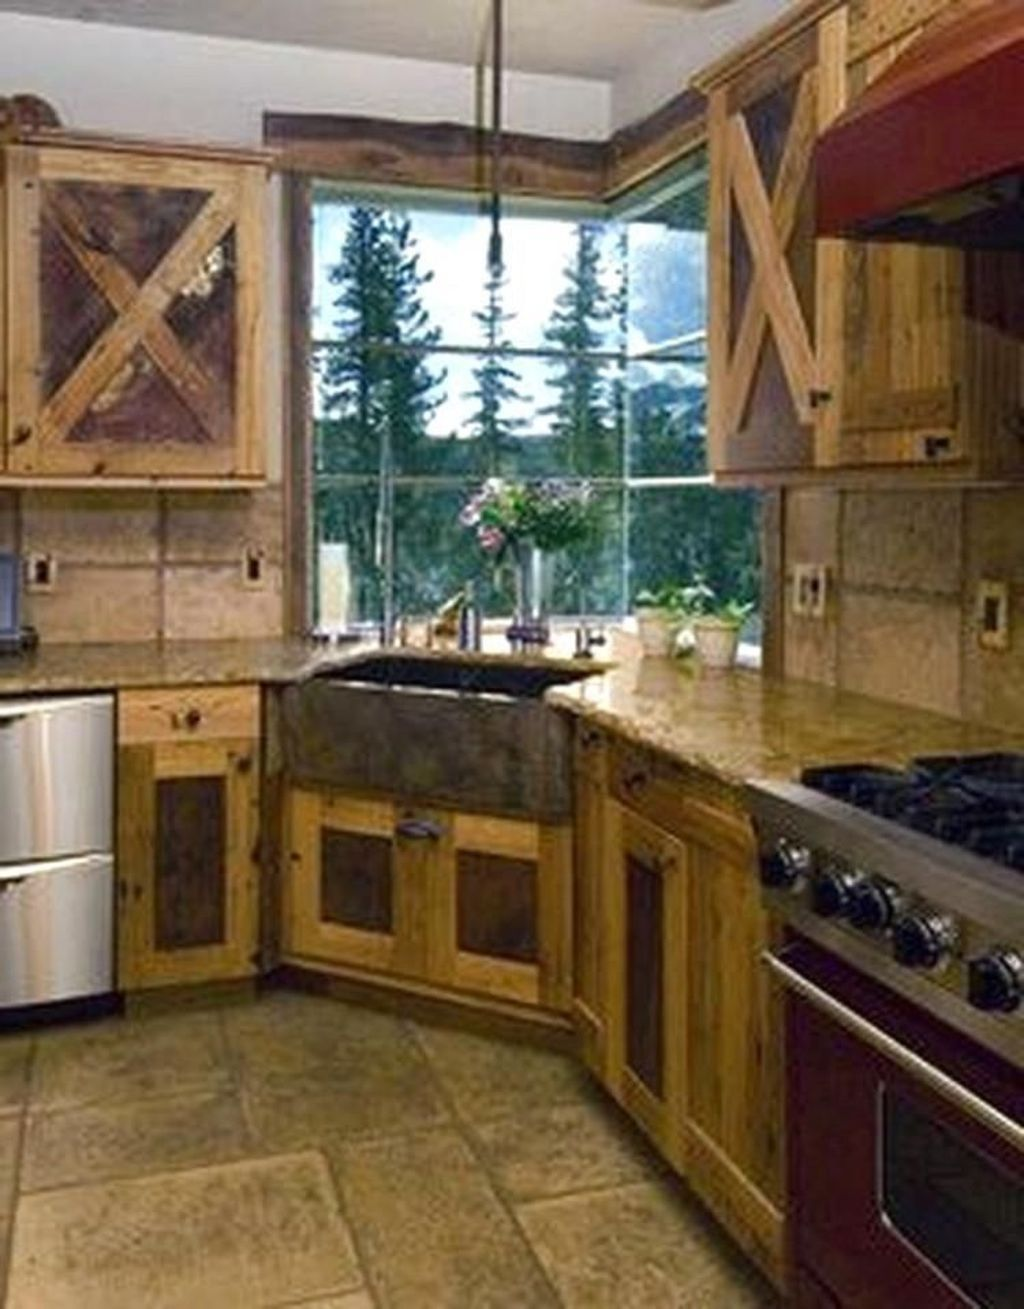 42 Lovely Rustic Western Style Kitchen Decorations Ideas With Images Rustic Kitchen Home Rustic Kitchen Cabinets